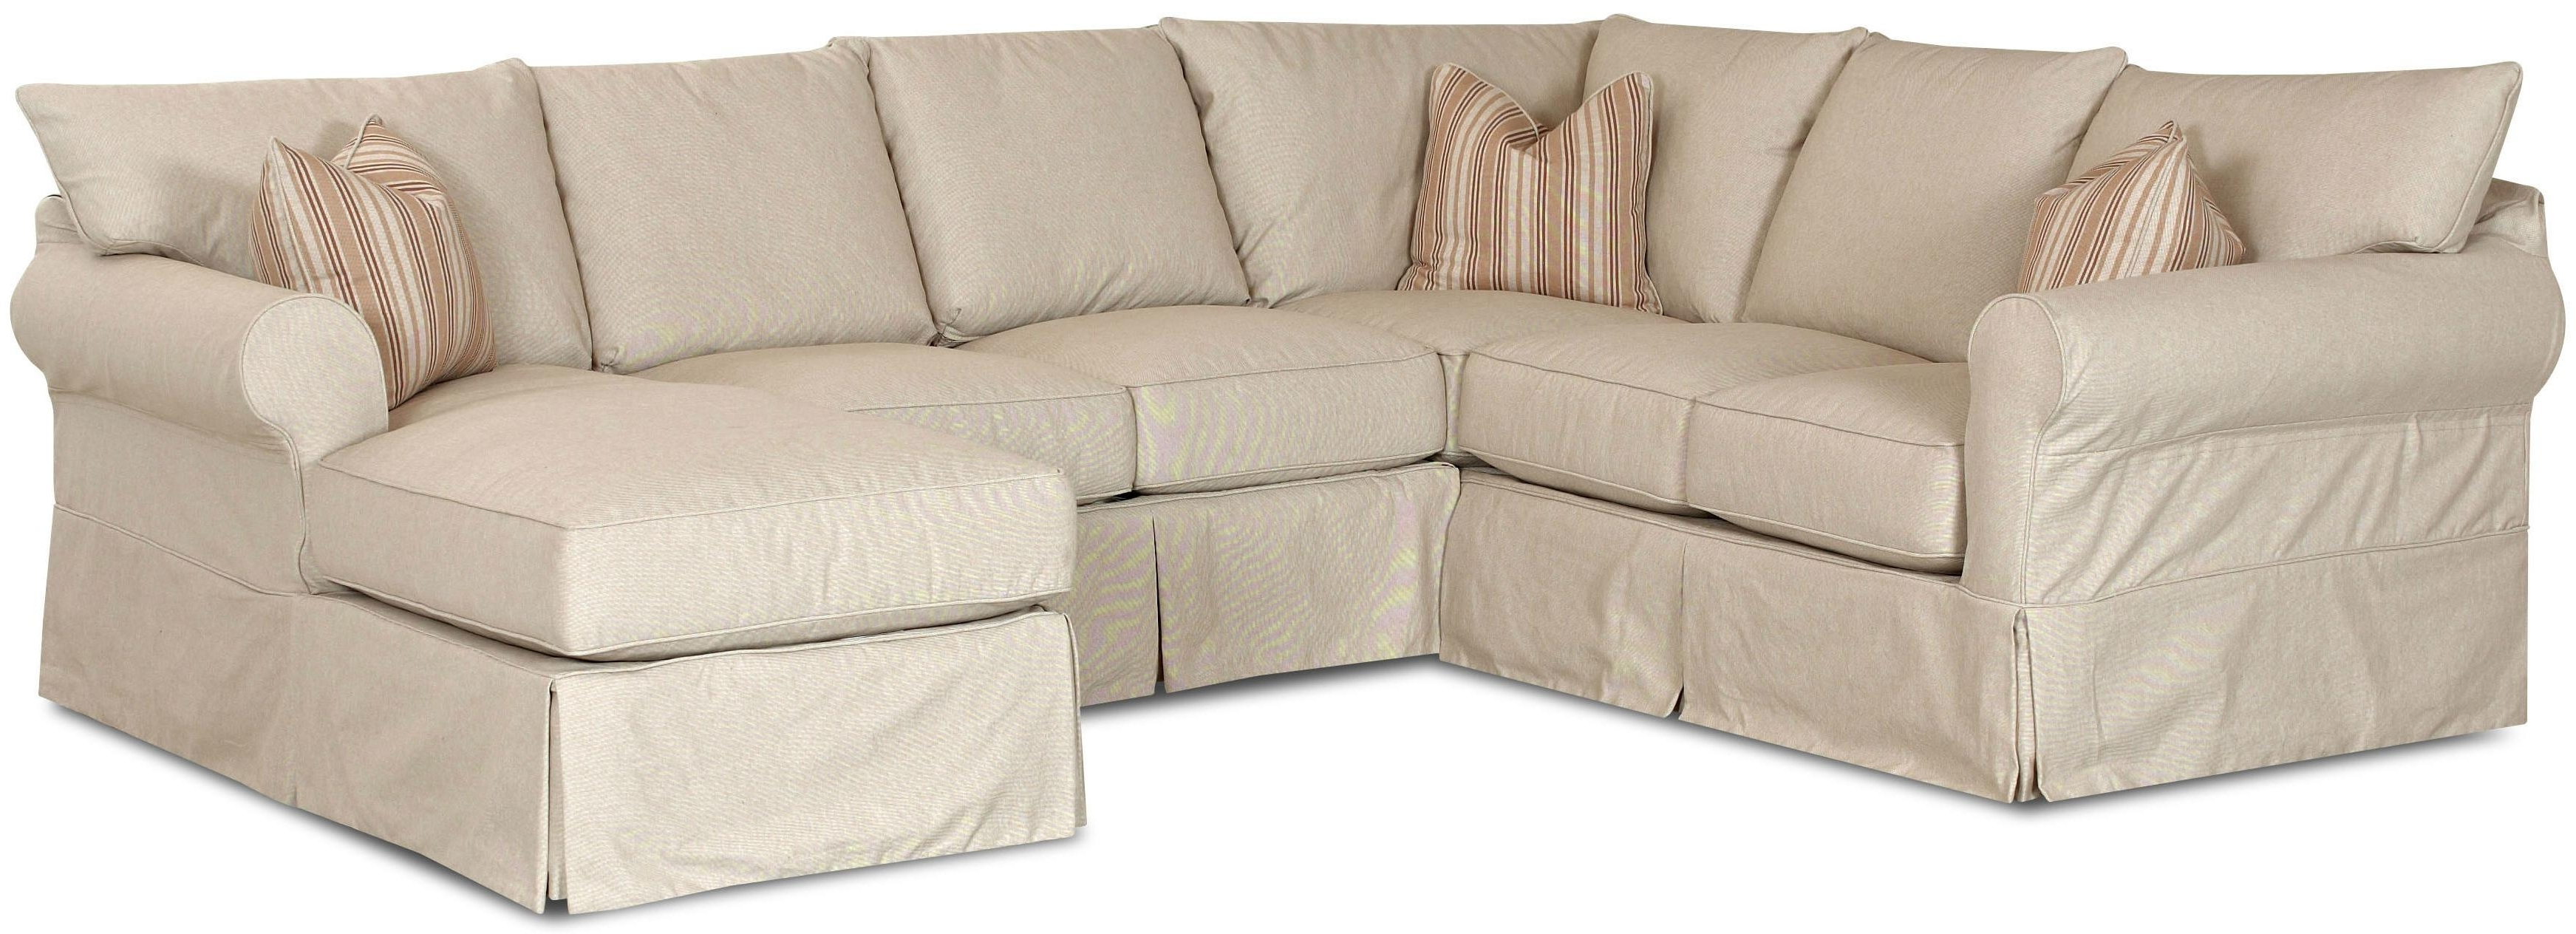 Slipcovers For Sectional Sofa With Chaise Regarding Widely Used Furniture: Creating Perfect Setting For Your Space With Sectional (View 9 of 15)